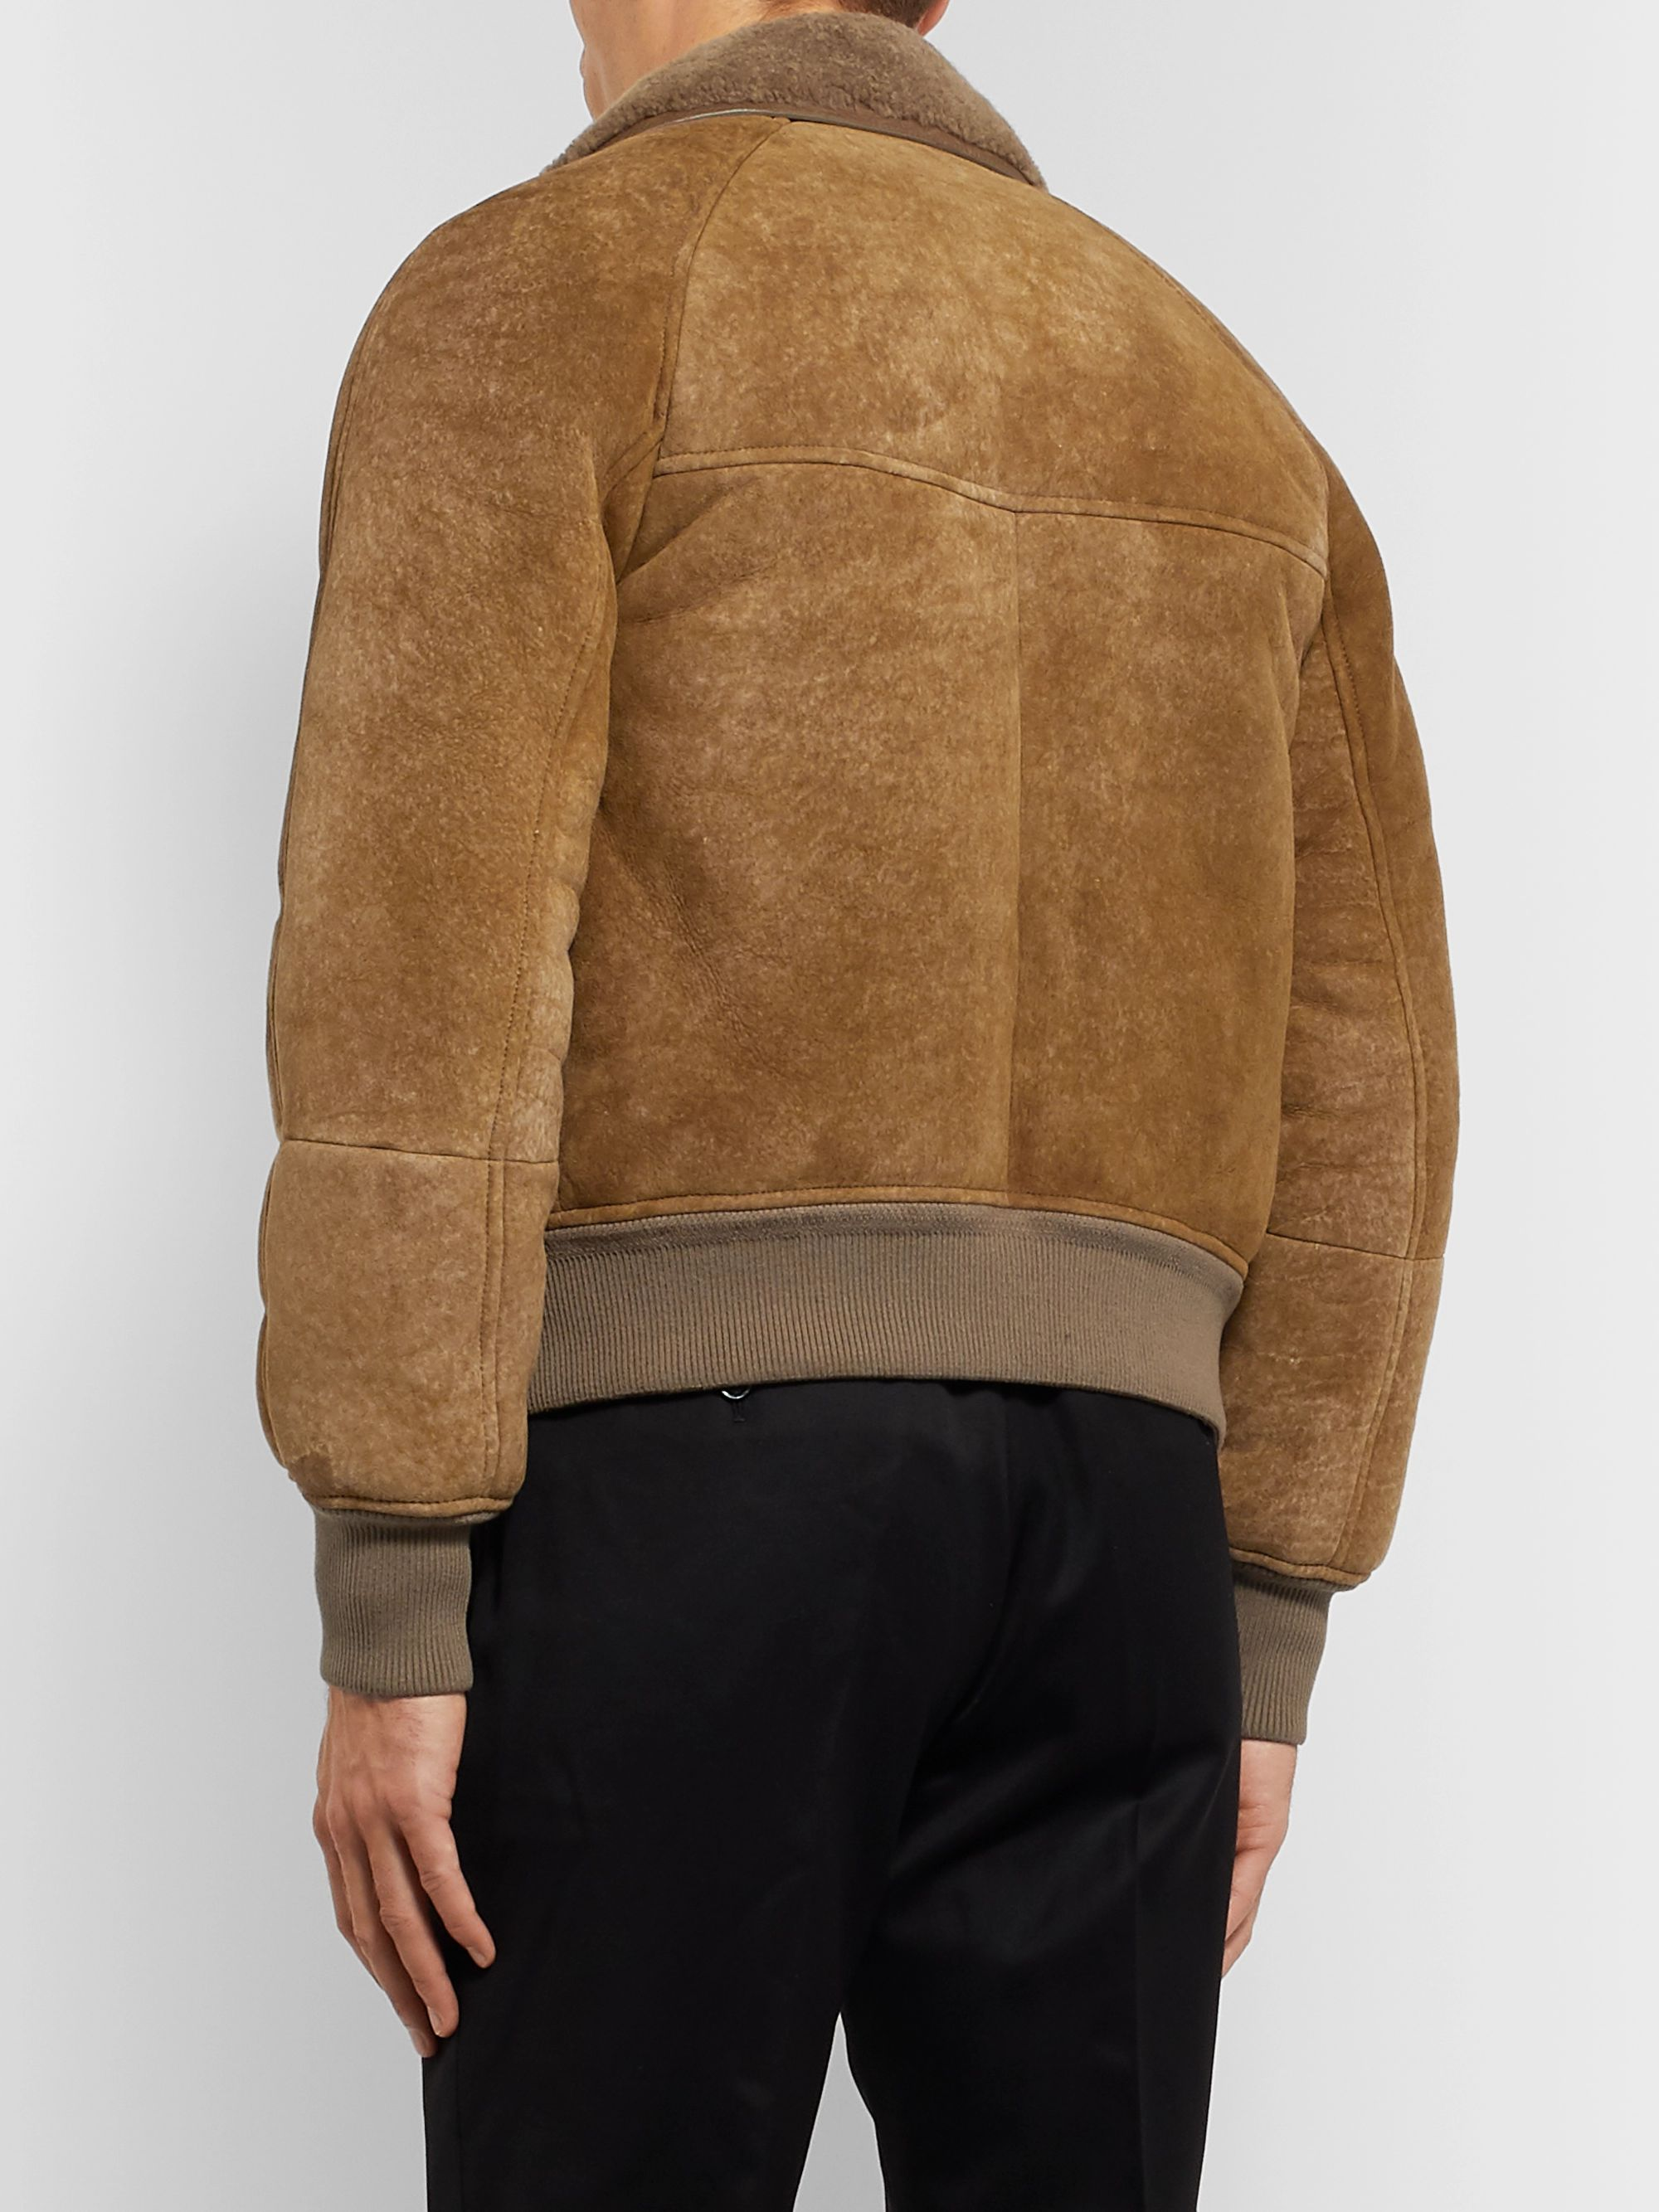 TOM FORD Shearling Bomber Jacket